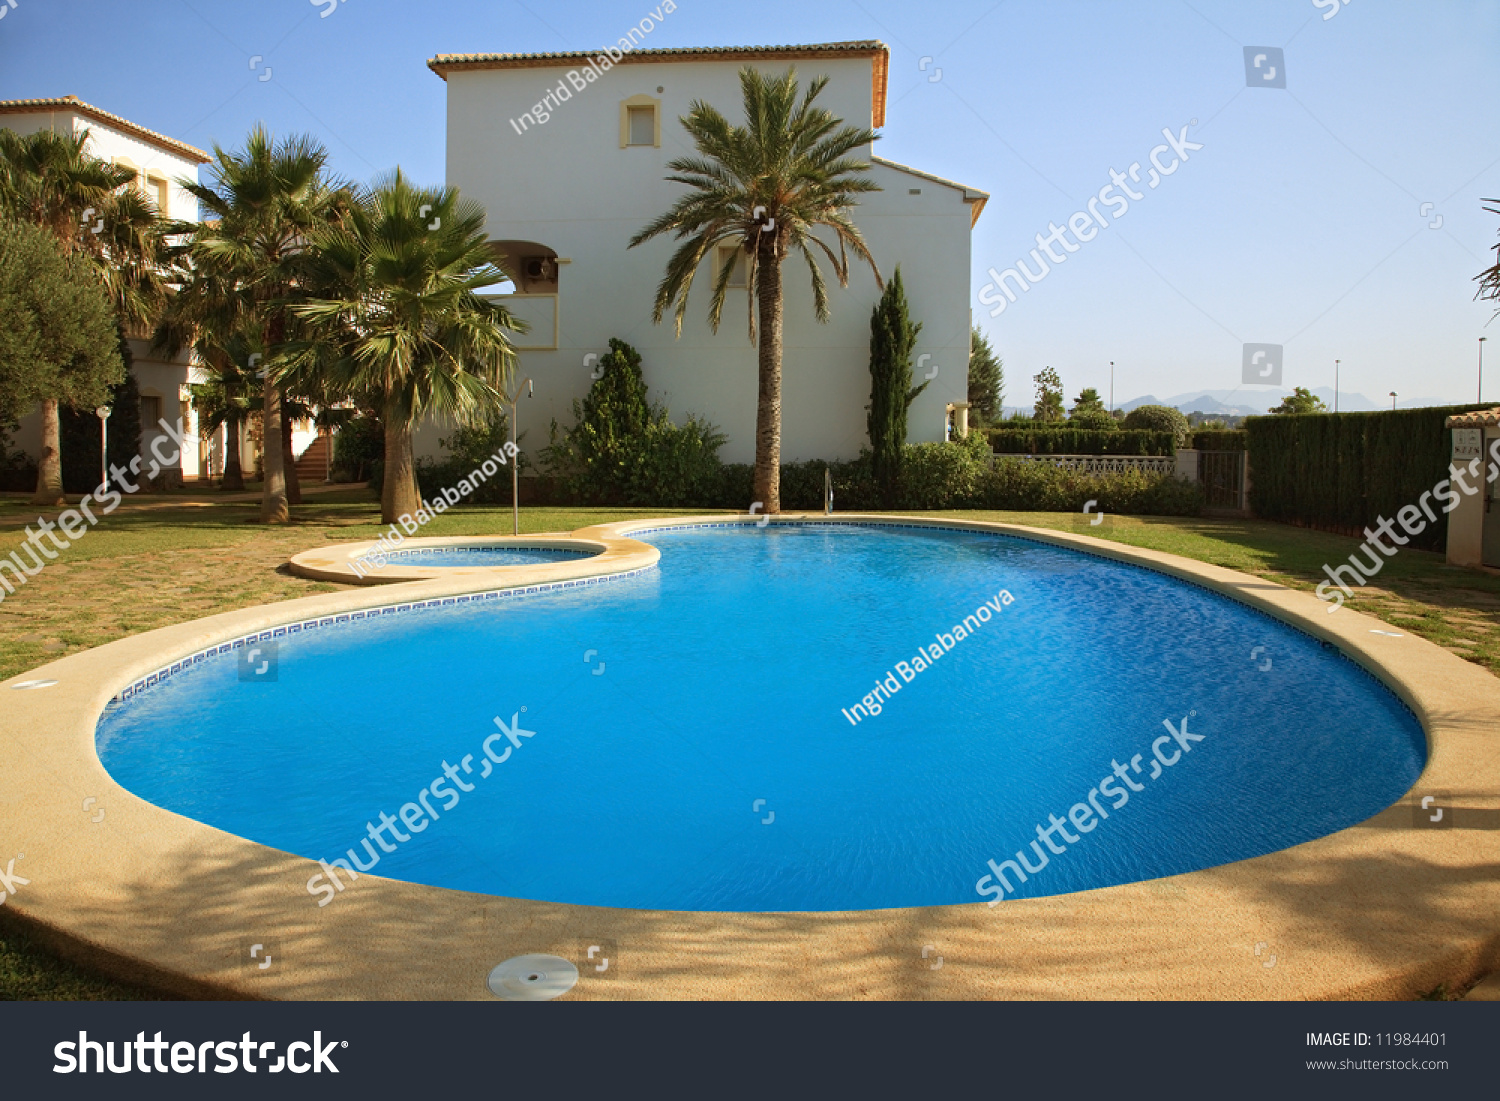 Spanish villas with swimming pool stock photo 11984401 shutterstock for How to say swimming pool in spanish